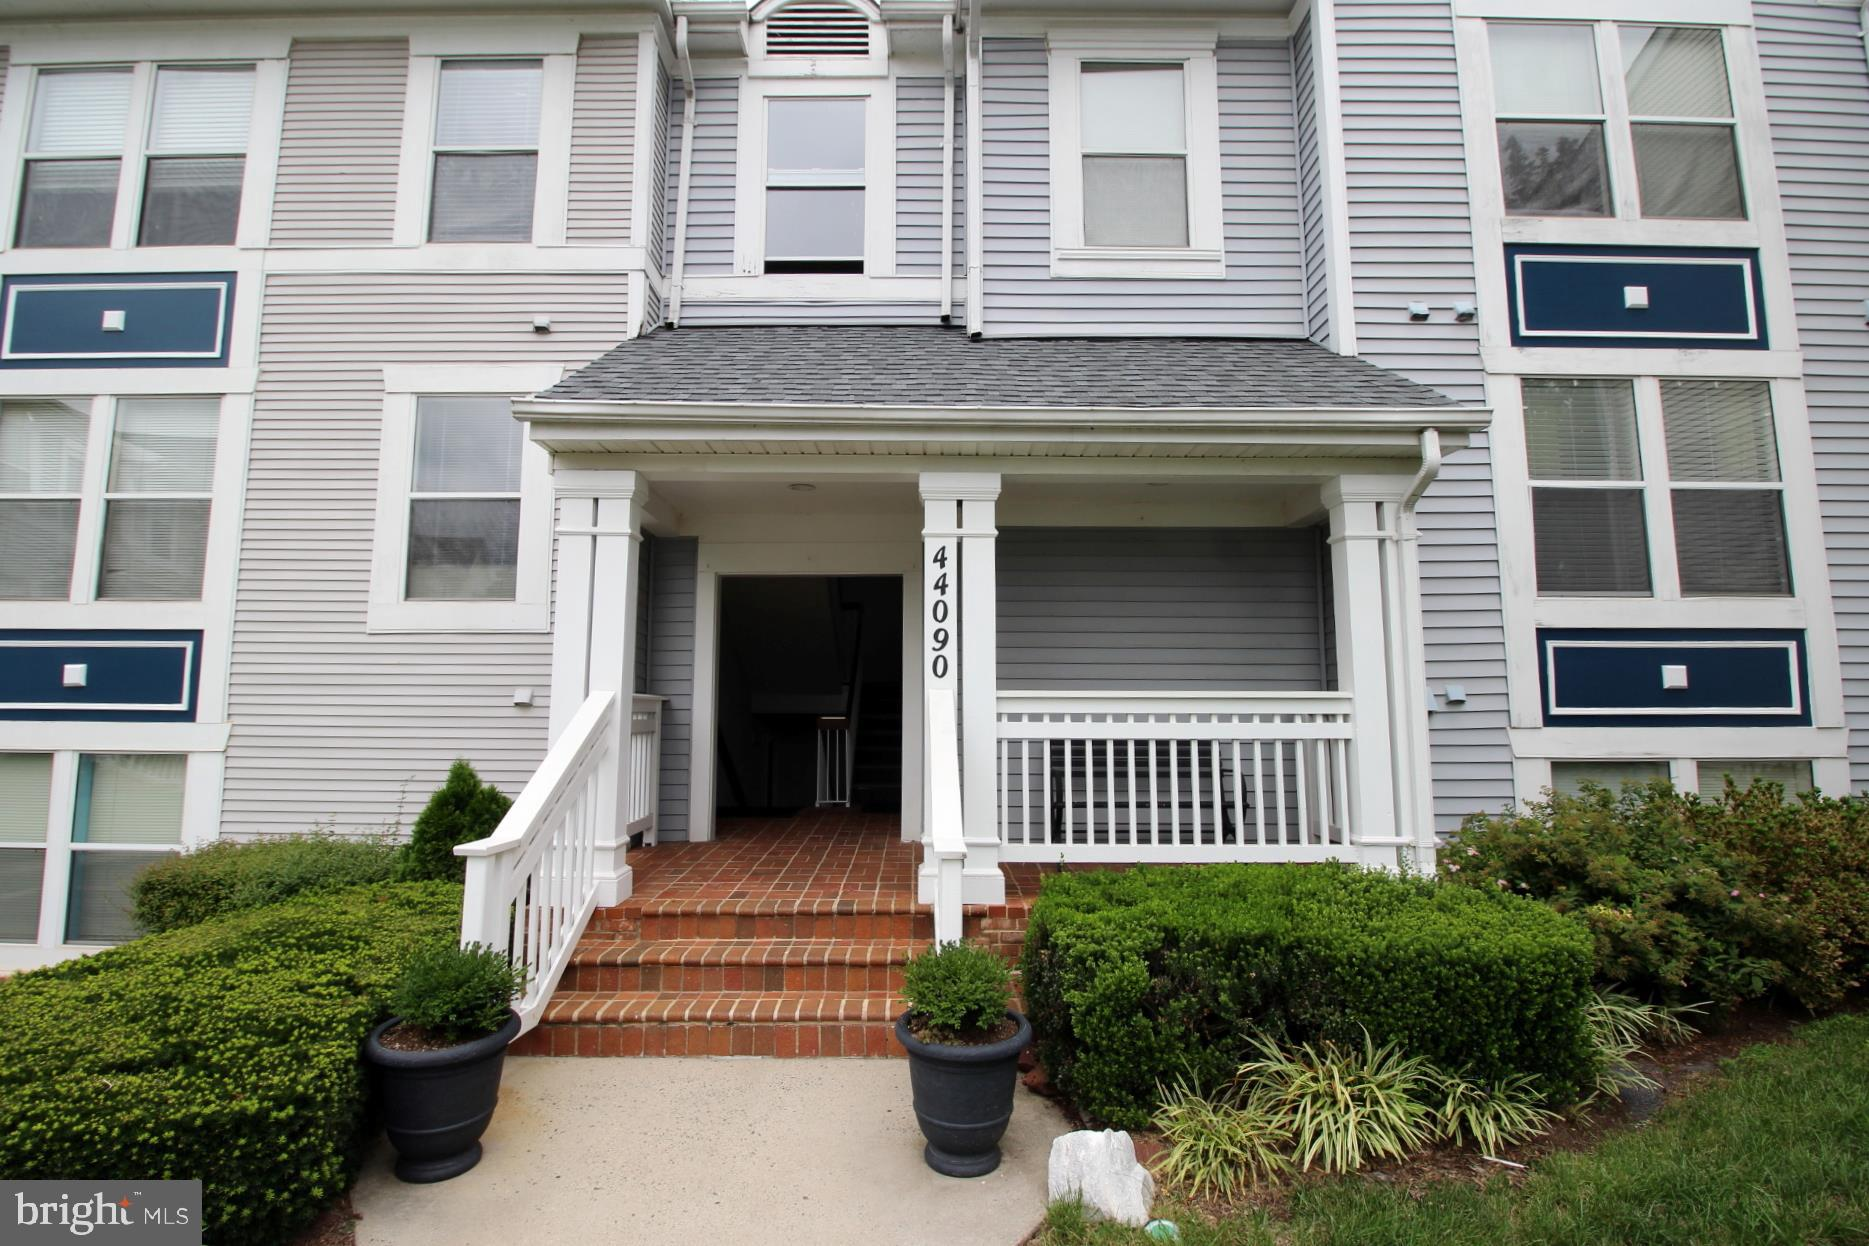 20147 2 Bedroom Home For Sale